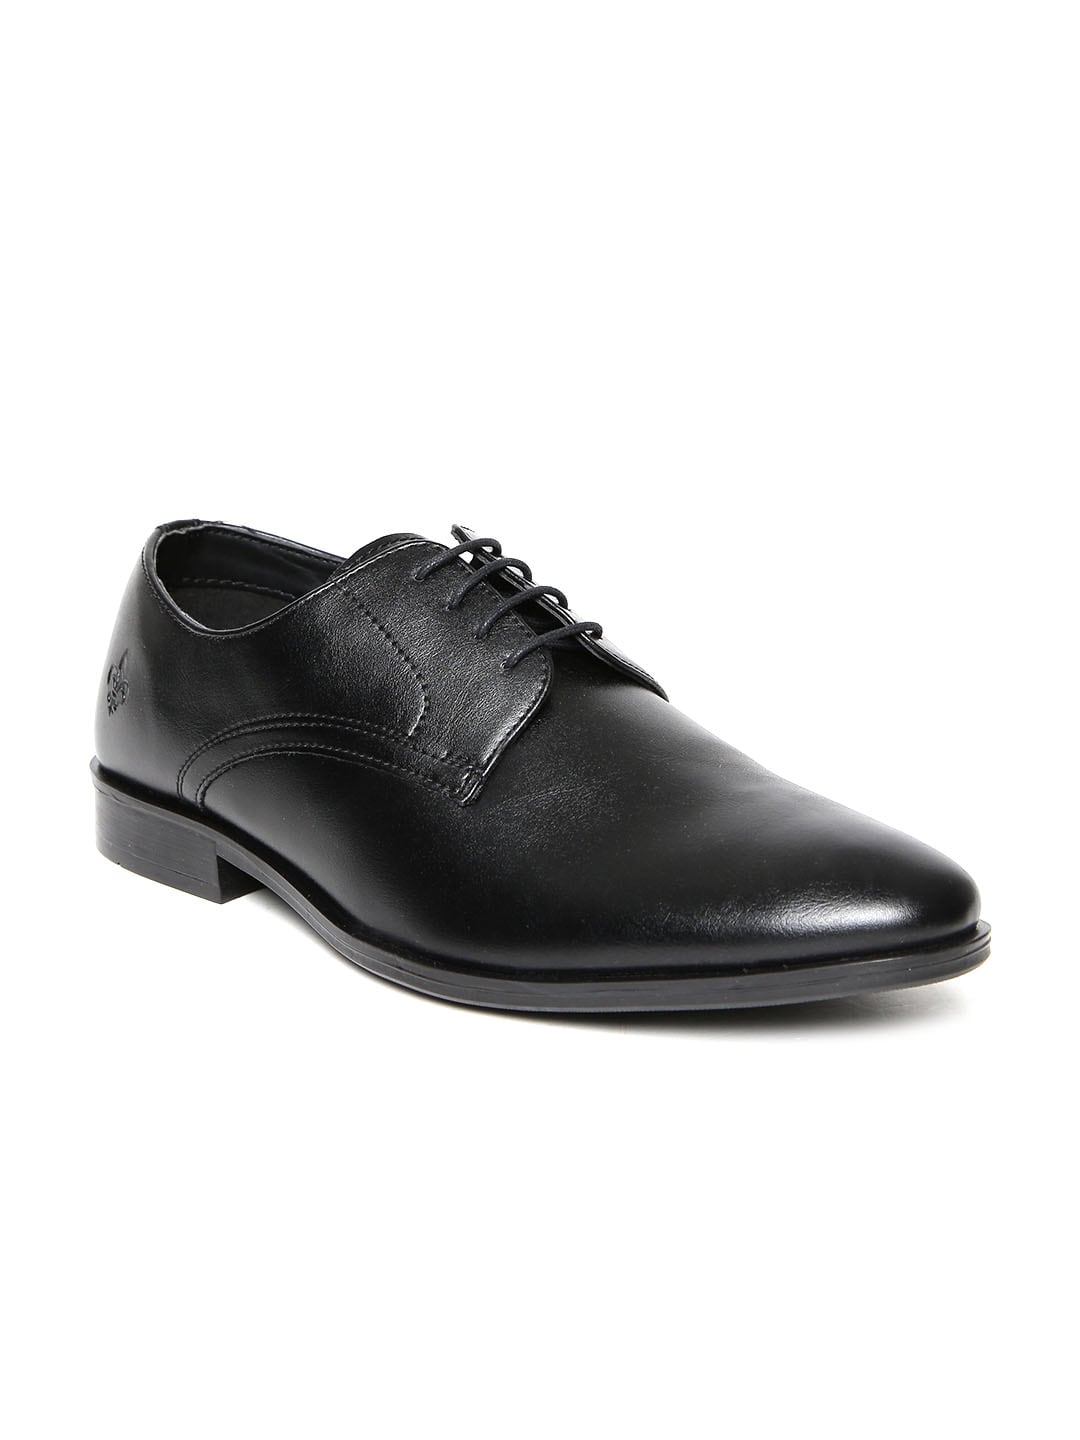 Bond Street by Red Tape Men Black Formal Shoes Price in India